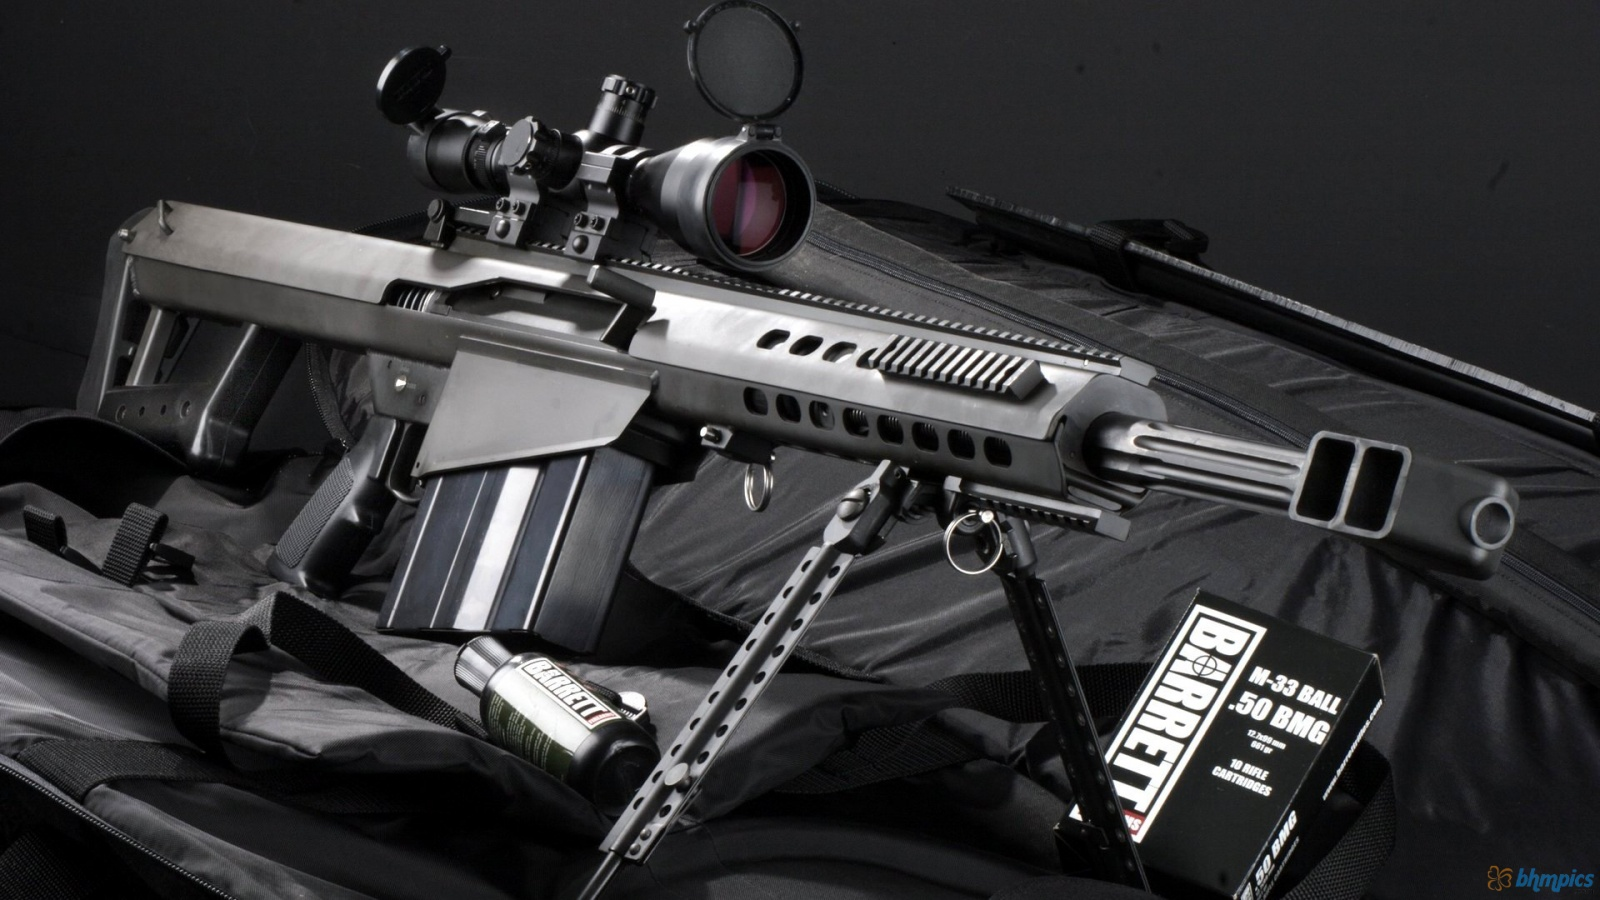 Sniper Rifle M82a1 1600x900 1788 HD Wallpaper Res 1600x900 1600x900